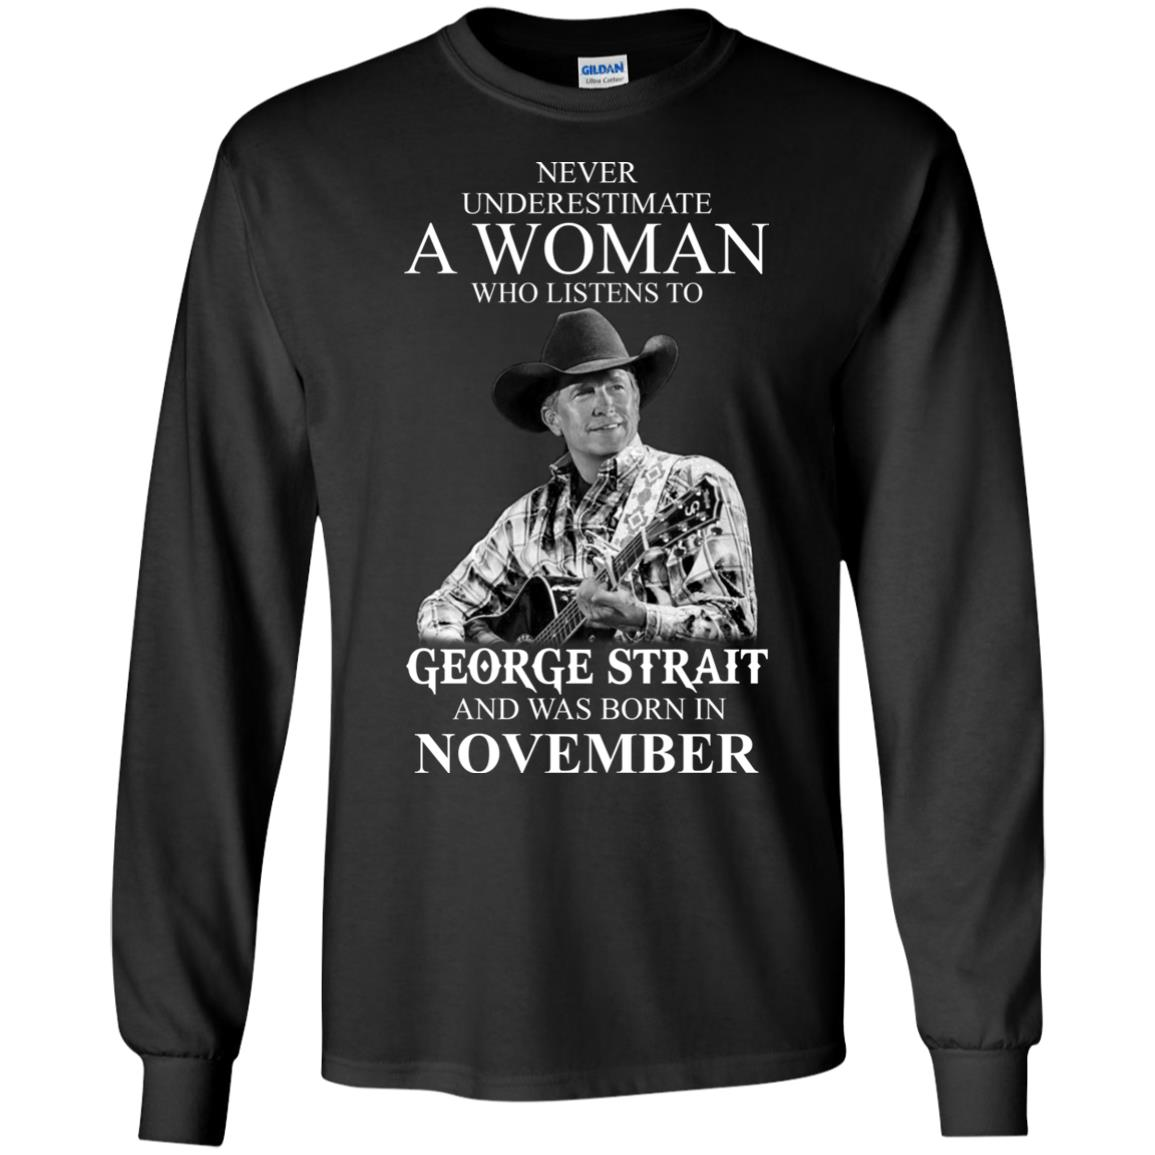 image 352 - Never Underestimate A Woman Who Listens To George Strait And Was Born In November shirt